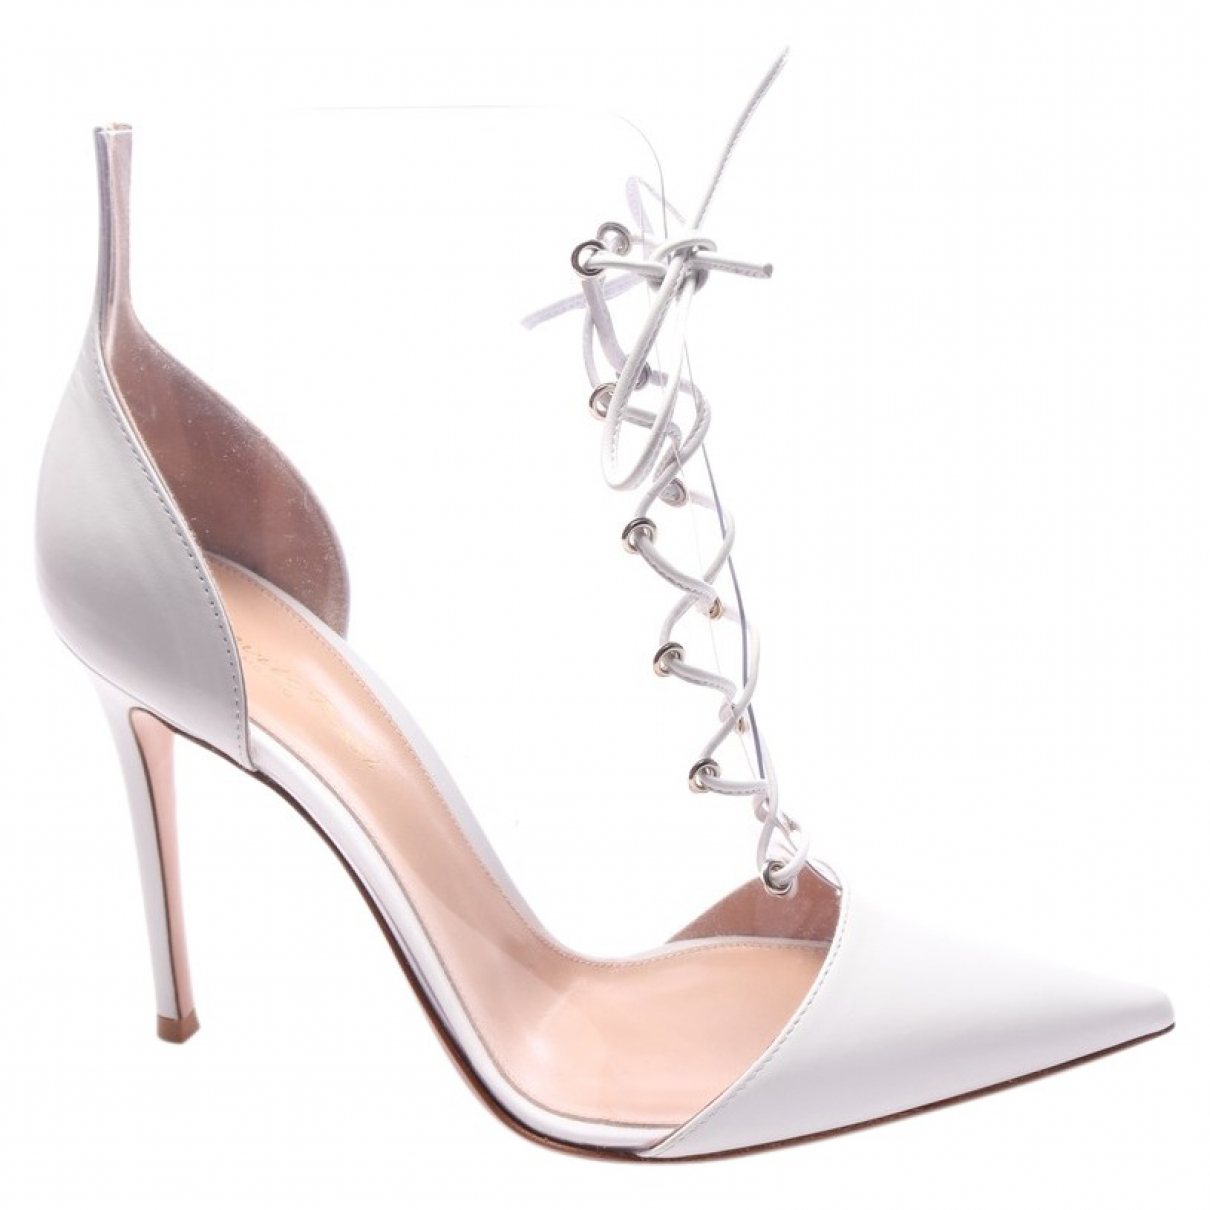 Gianvito Rossi \N White Leather Ankle boots for Women 39.5 EU